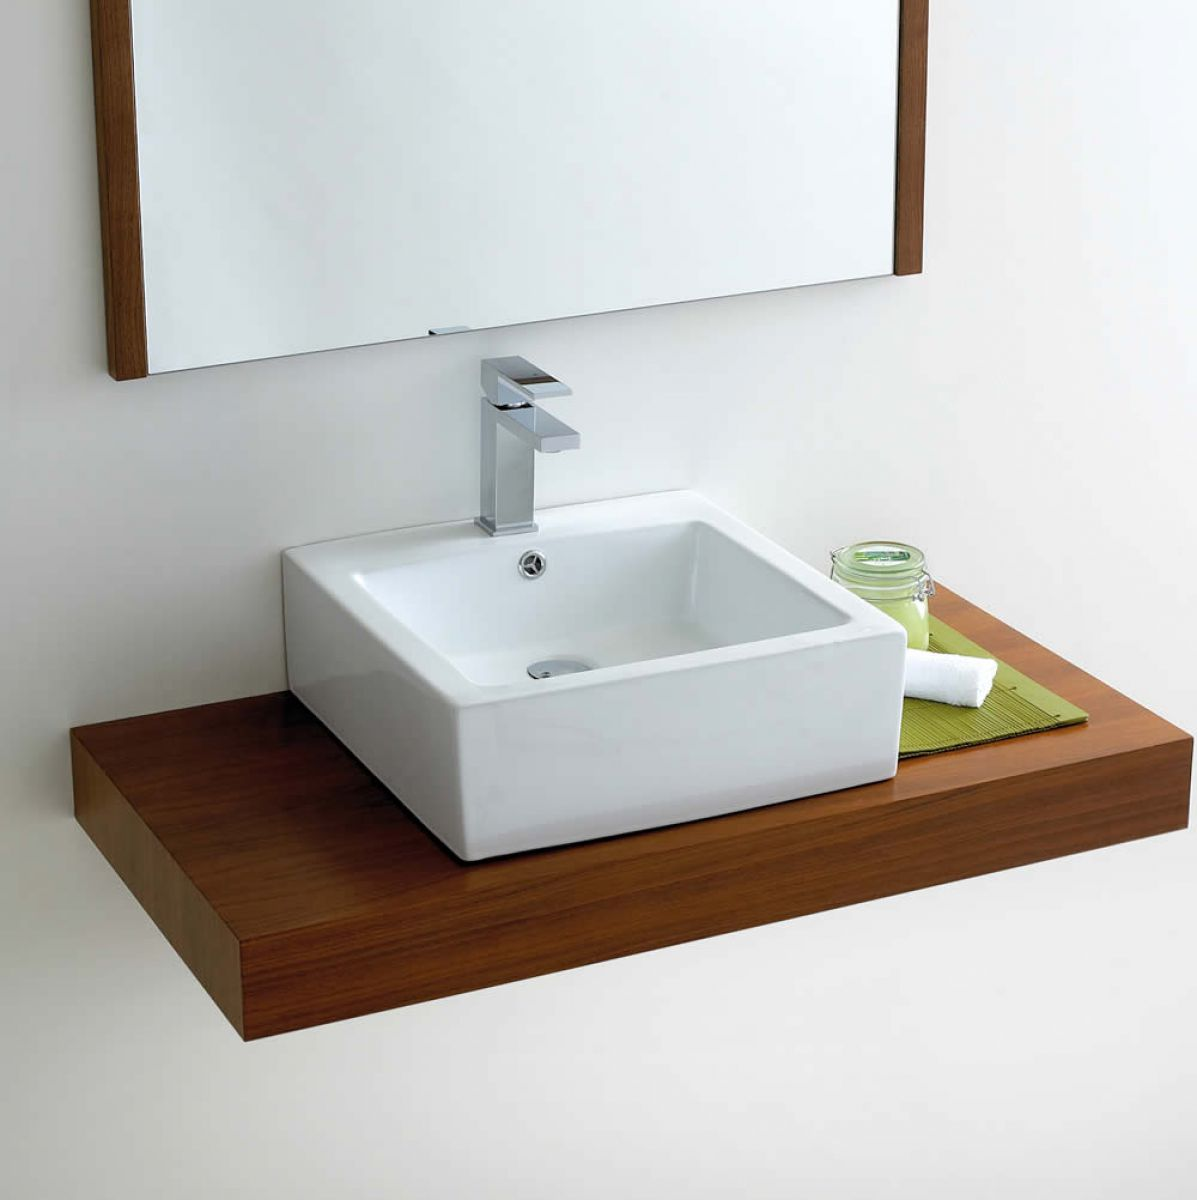 Best Countertops For Bathroom: Phoenix Deep Square Counter Top Bathroom Basin VB039 : UK